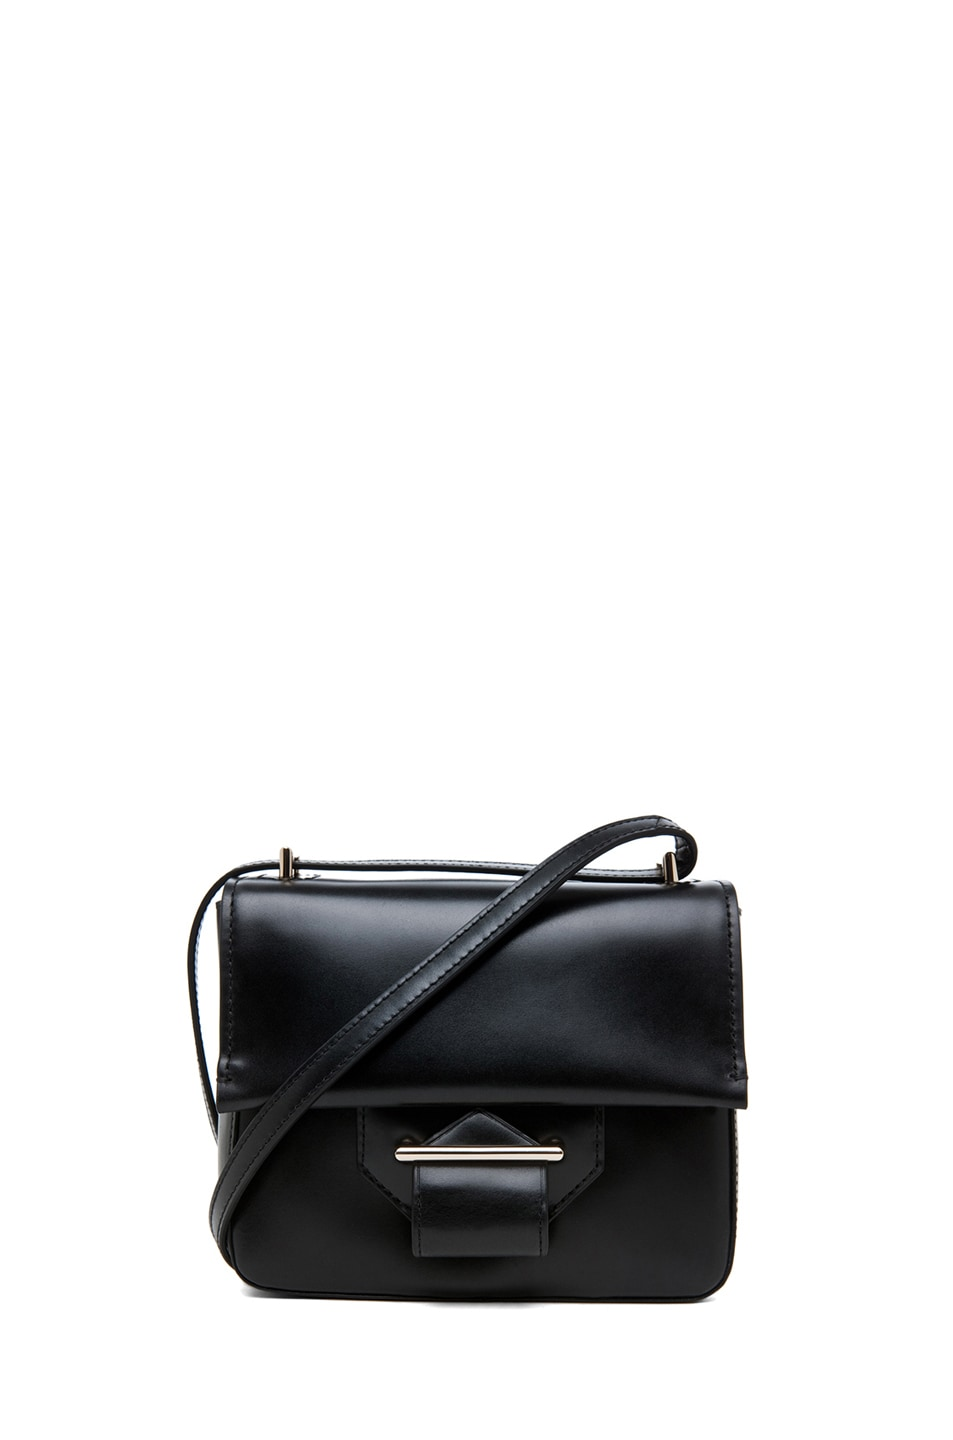 Image 1 of Reed Krakoff Standard Mini Shoulder Bag in Black